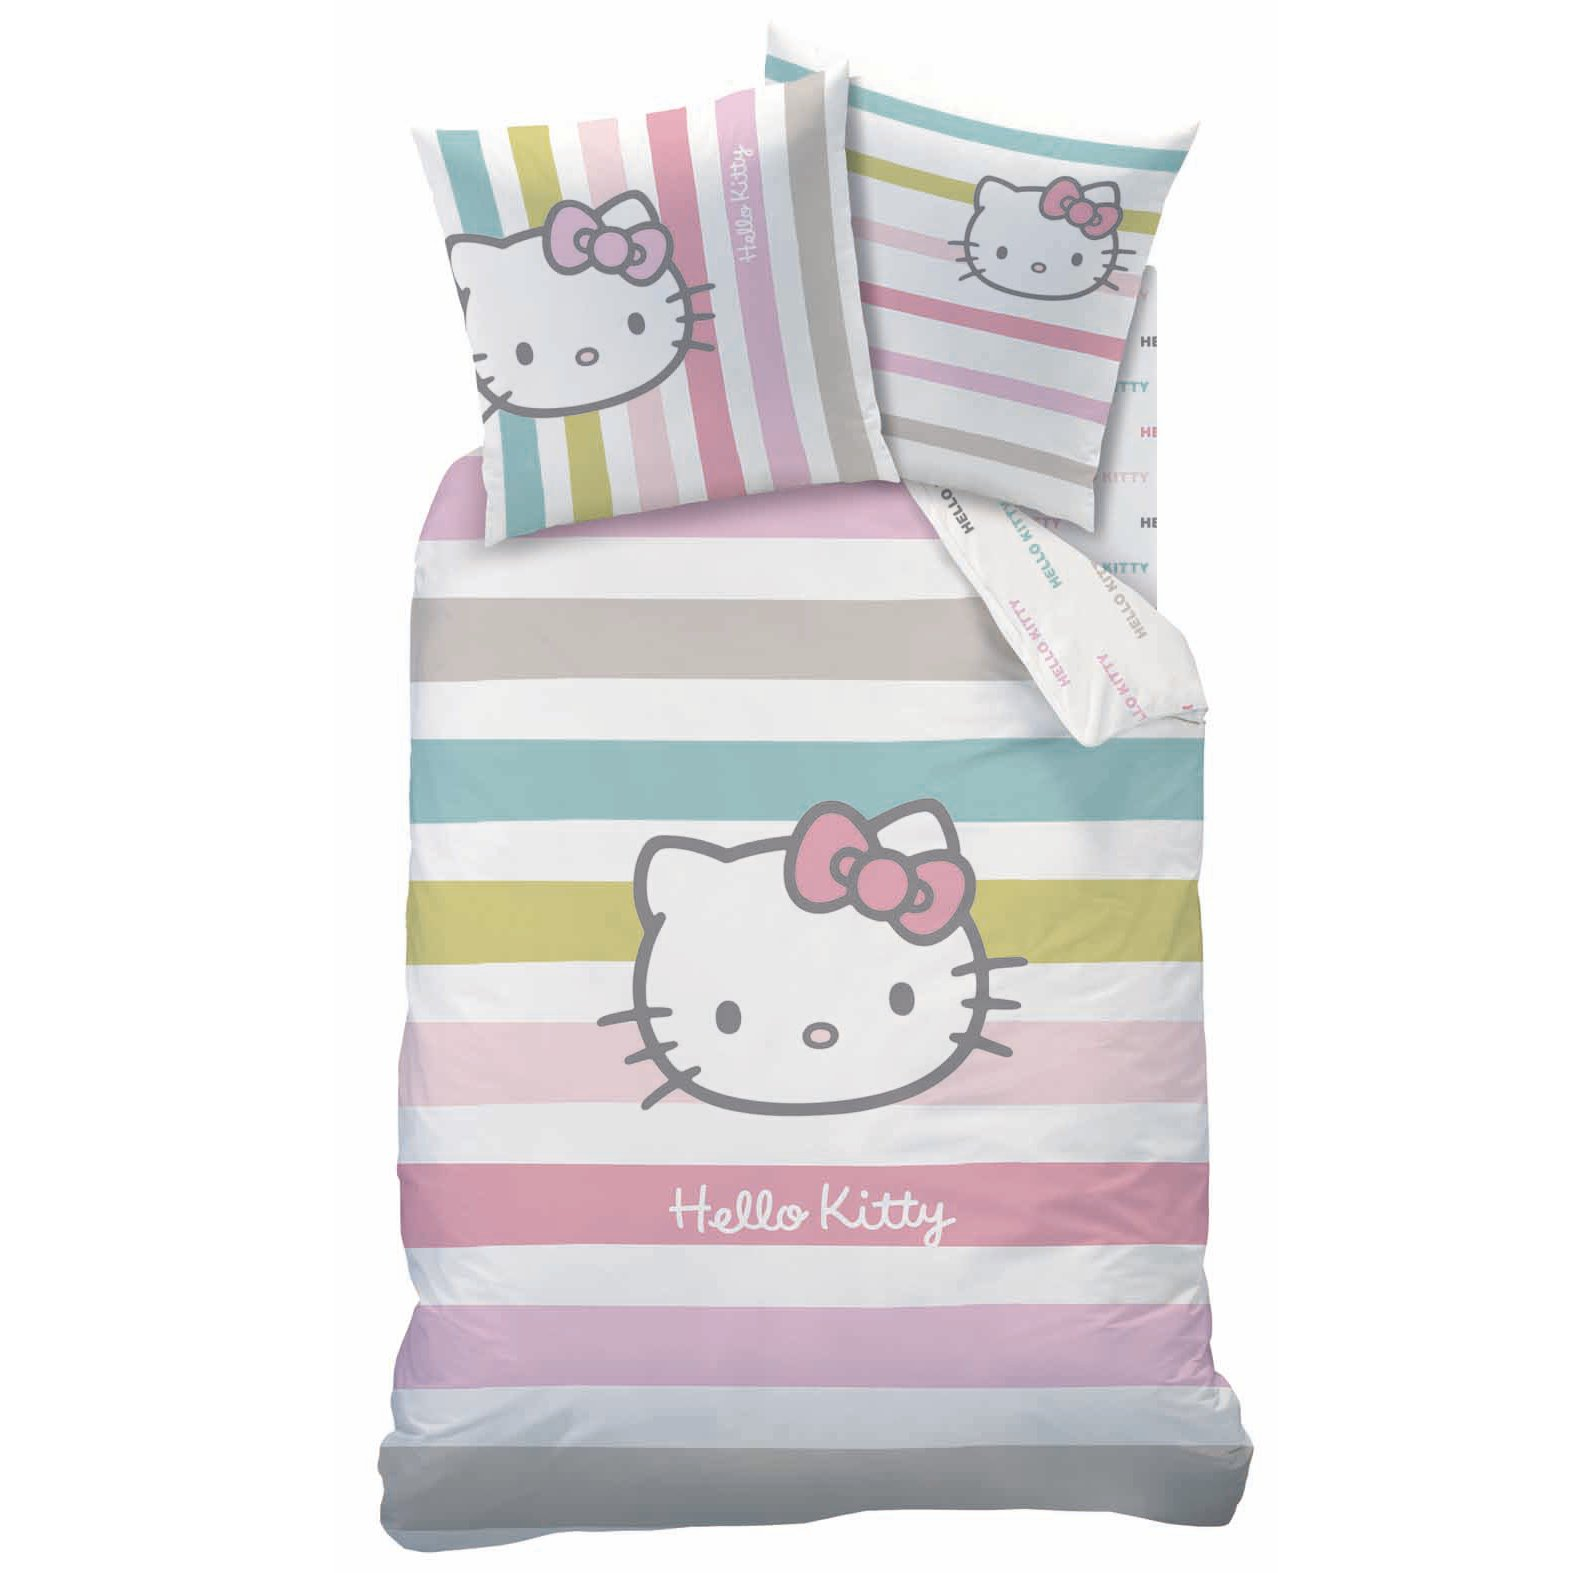 housse de couette hello kitty parure de lit housse de couette 140 x 200 cm ivana. Black Bedroom Furniture Sets. Home Design Ideas